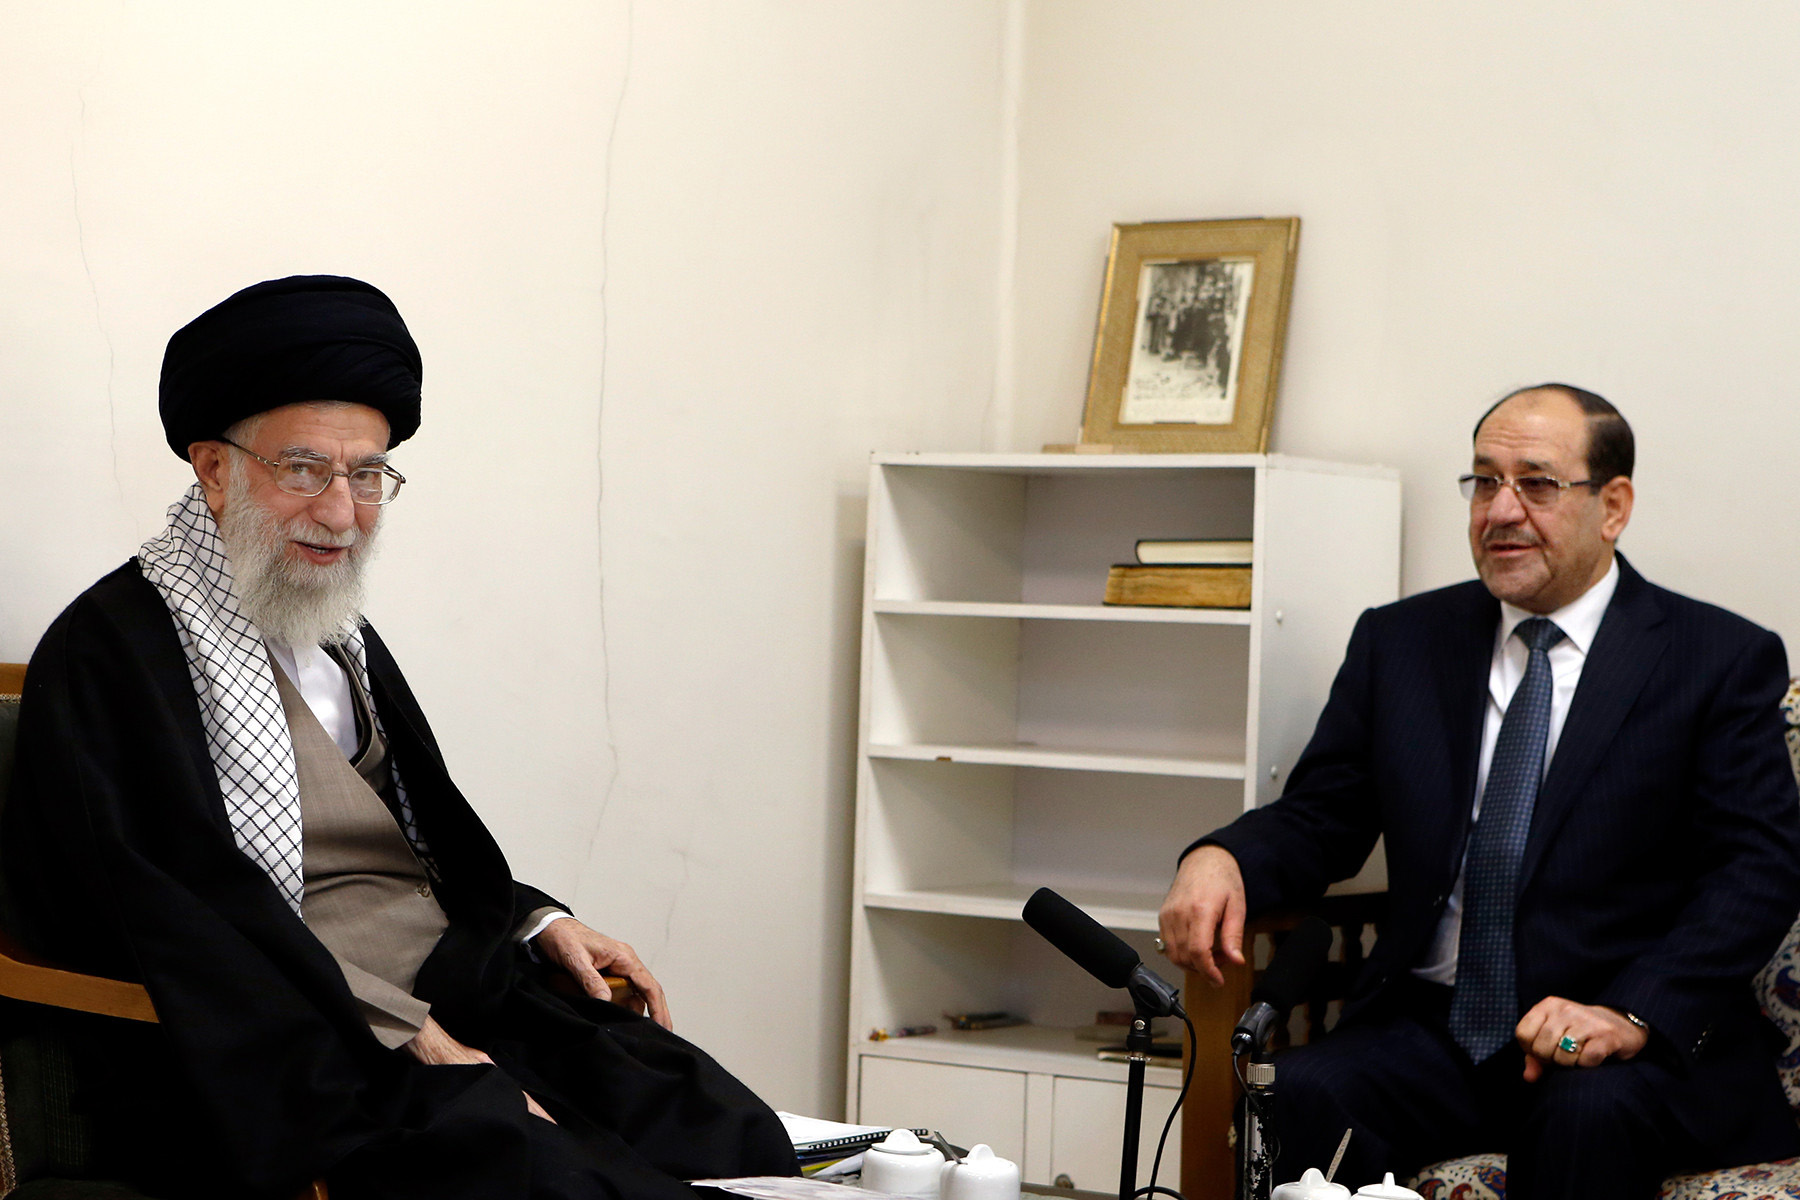 Al-Maliki is flirting with Iran ... and his eye is on power in Iraq 000_Nic6386087